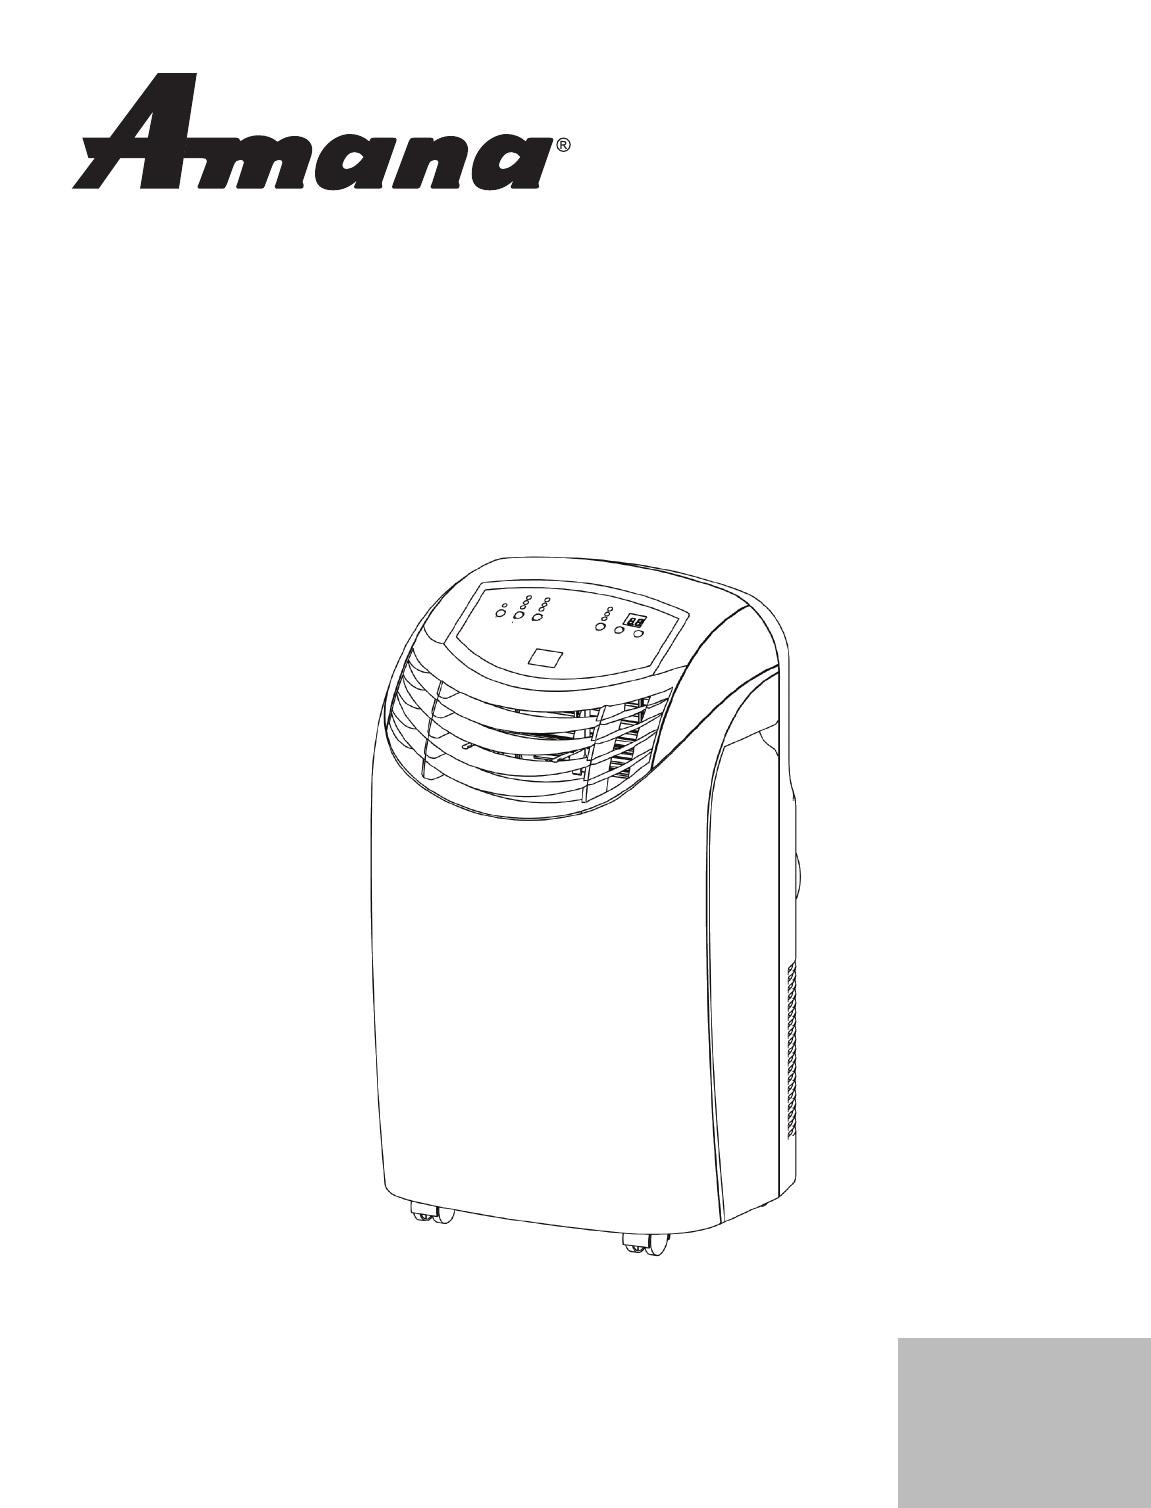 portable air conditioner user guide